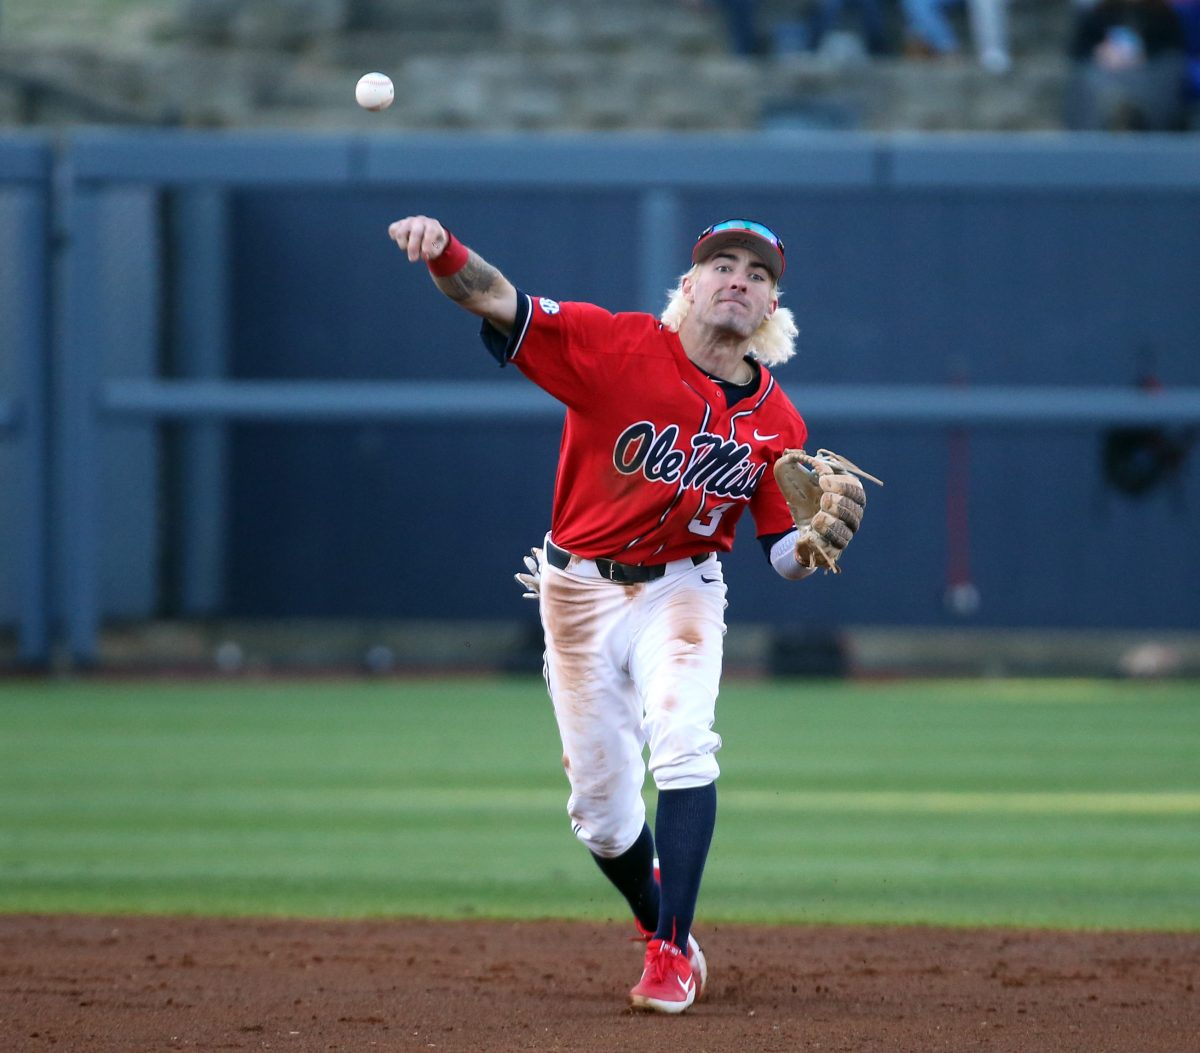 Sixth inning dooms Rebels in 7-2 loss to Louisville